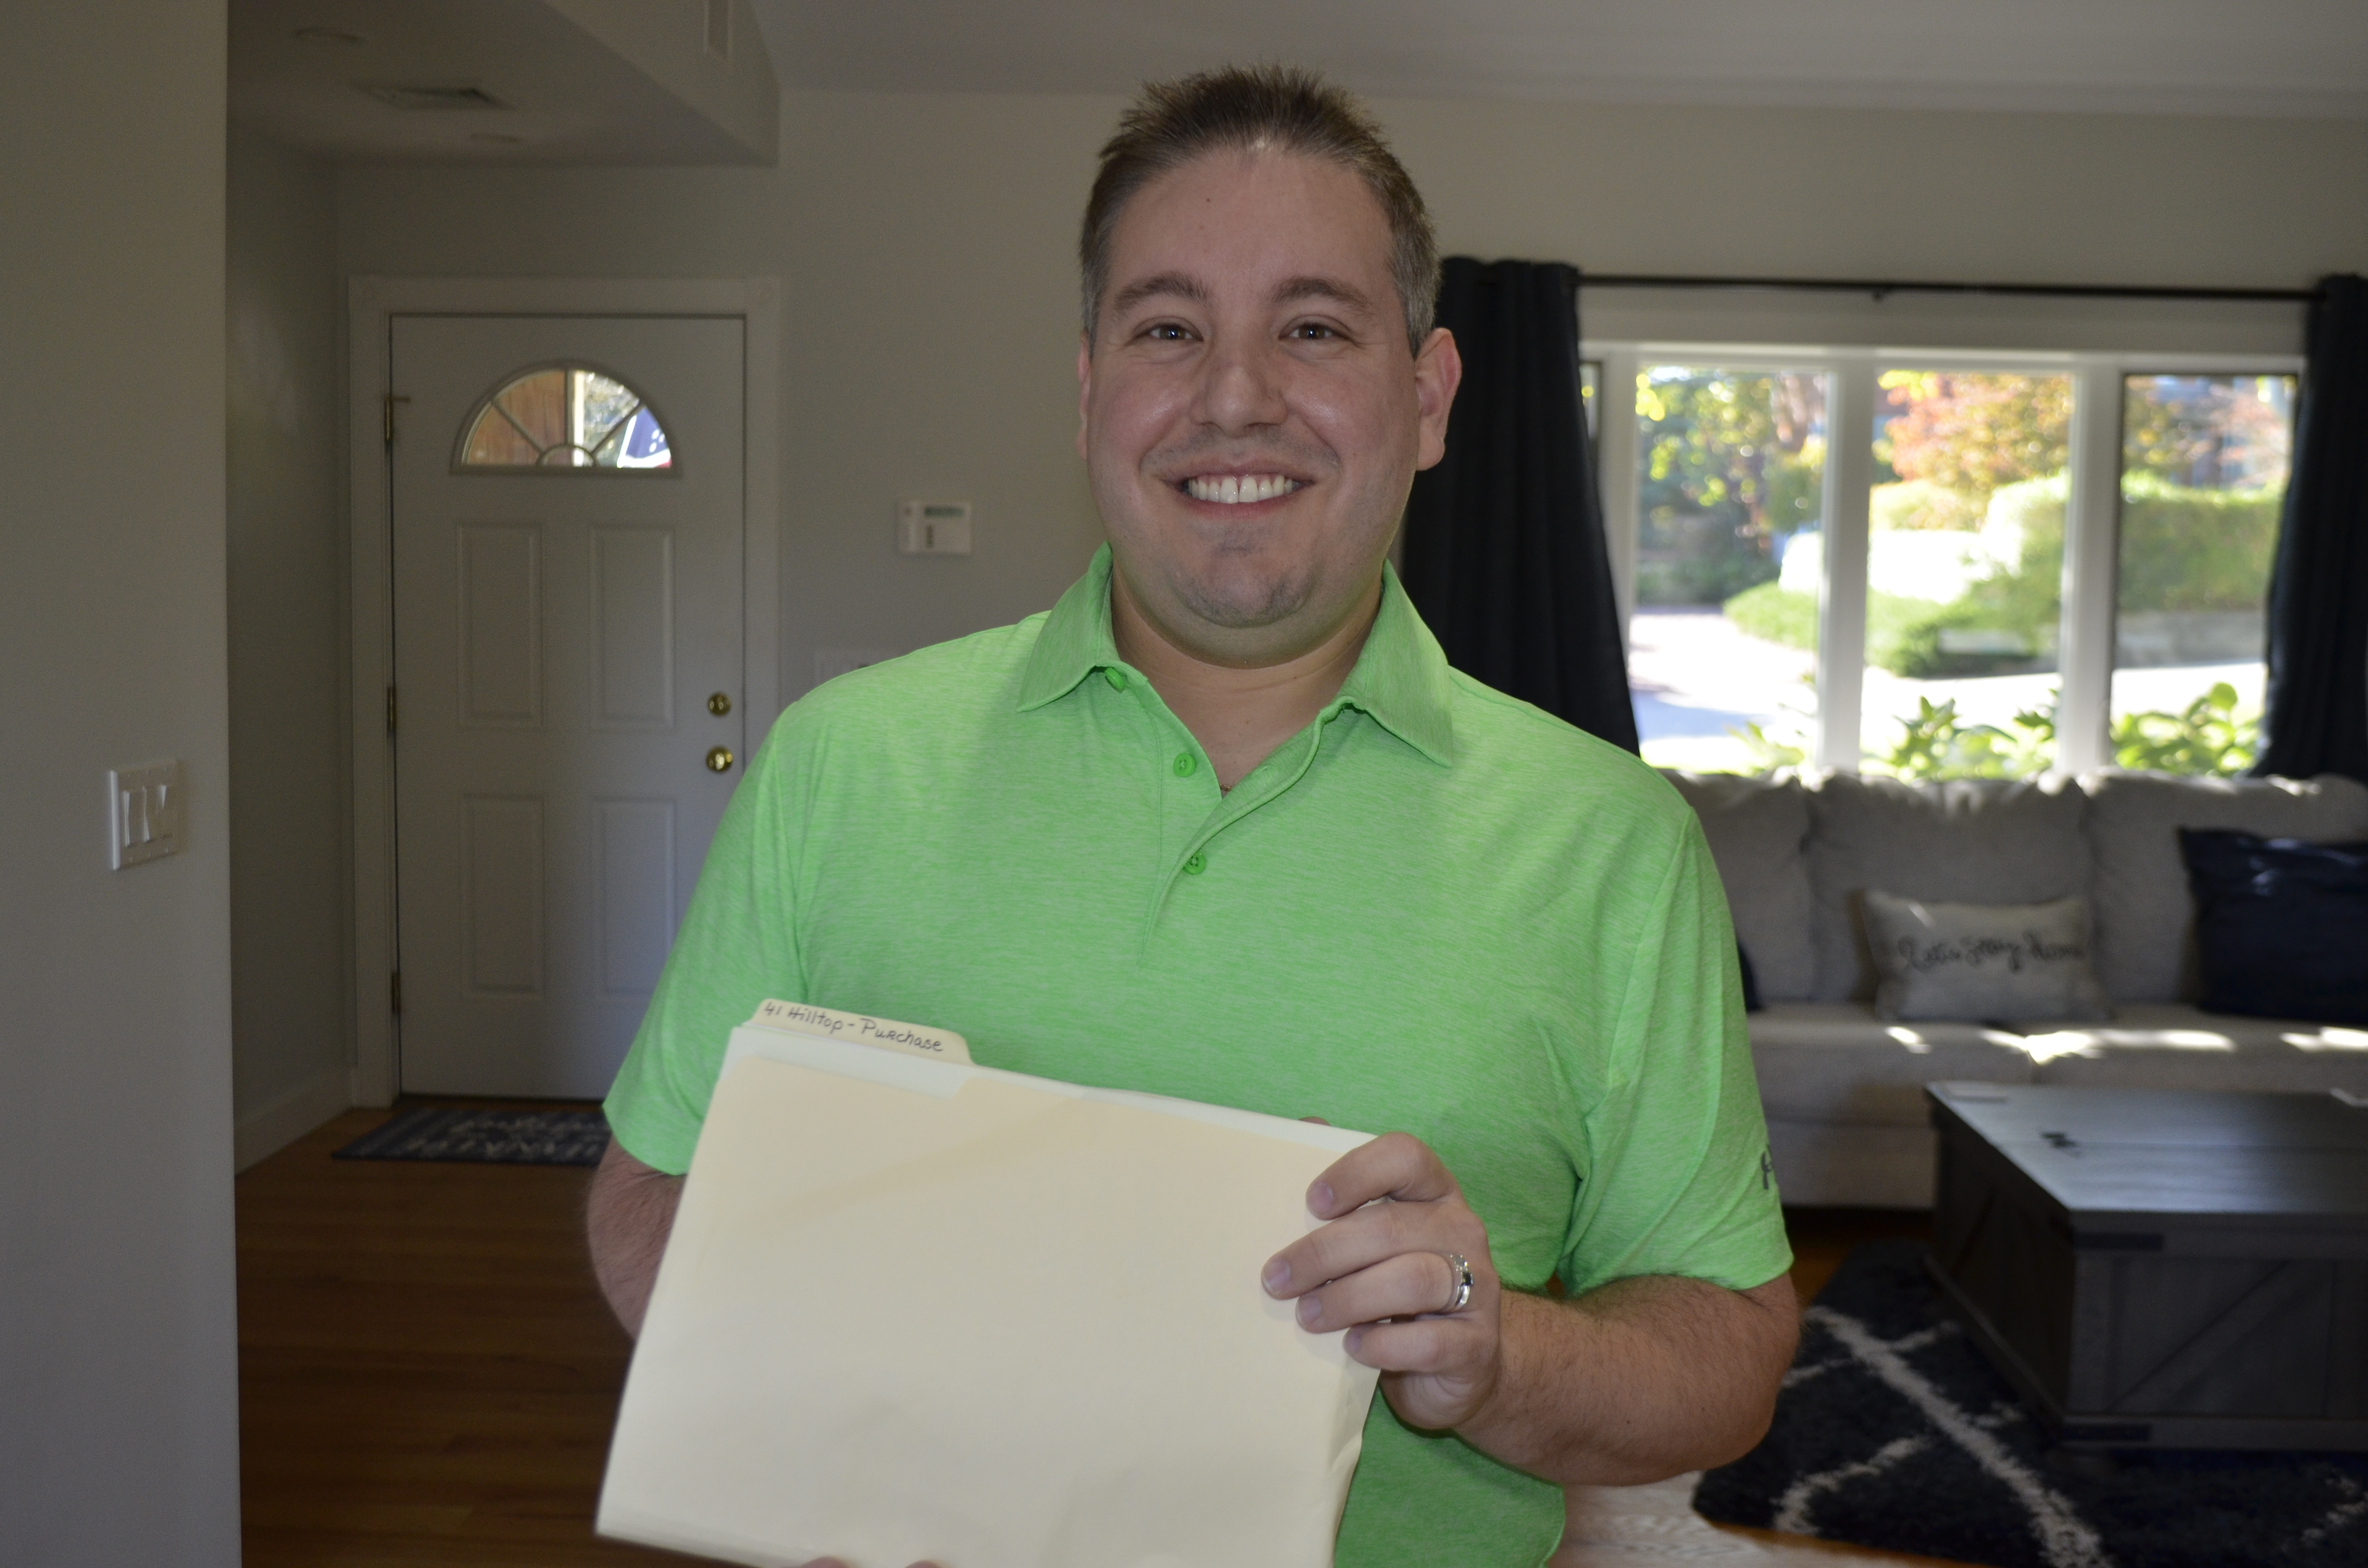 deed to his new home